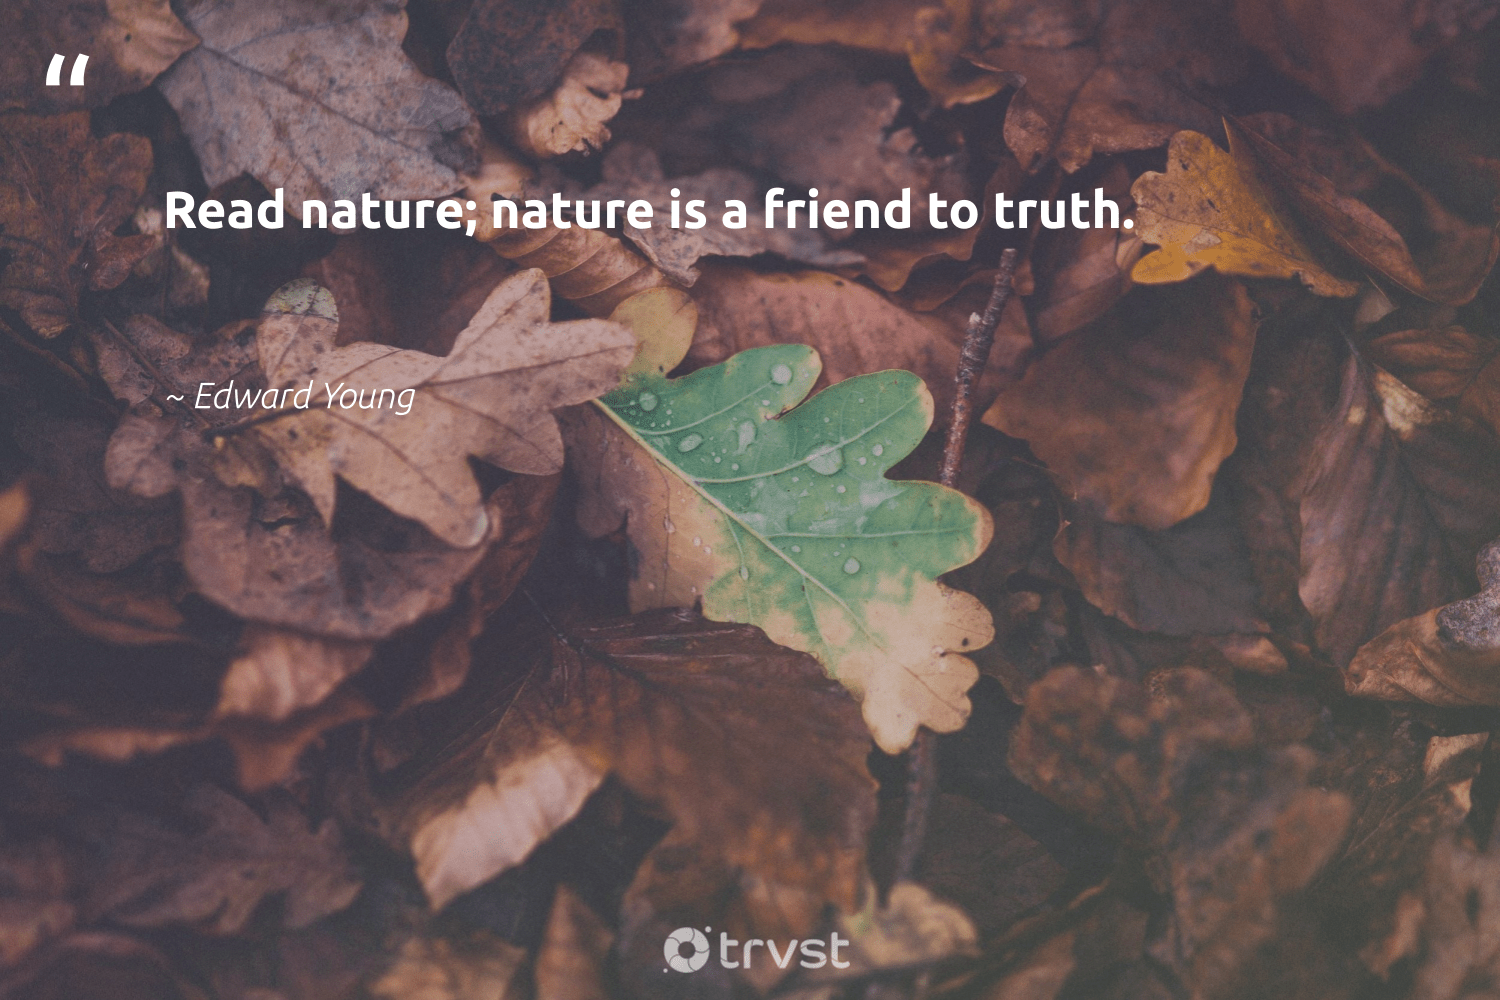 """""""Read nature; nature is a friend to truth.""""  - Edward Young #trvst #quotes #environment #nature #truth #earth #giveback #green #gogreen #conservation #environmentallyfriendly #sustainability"""